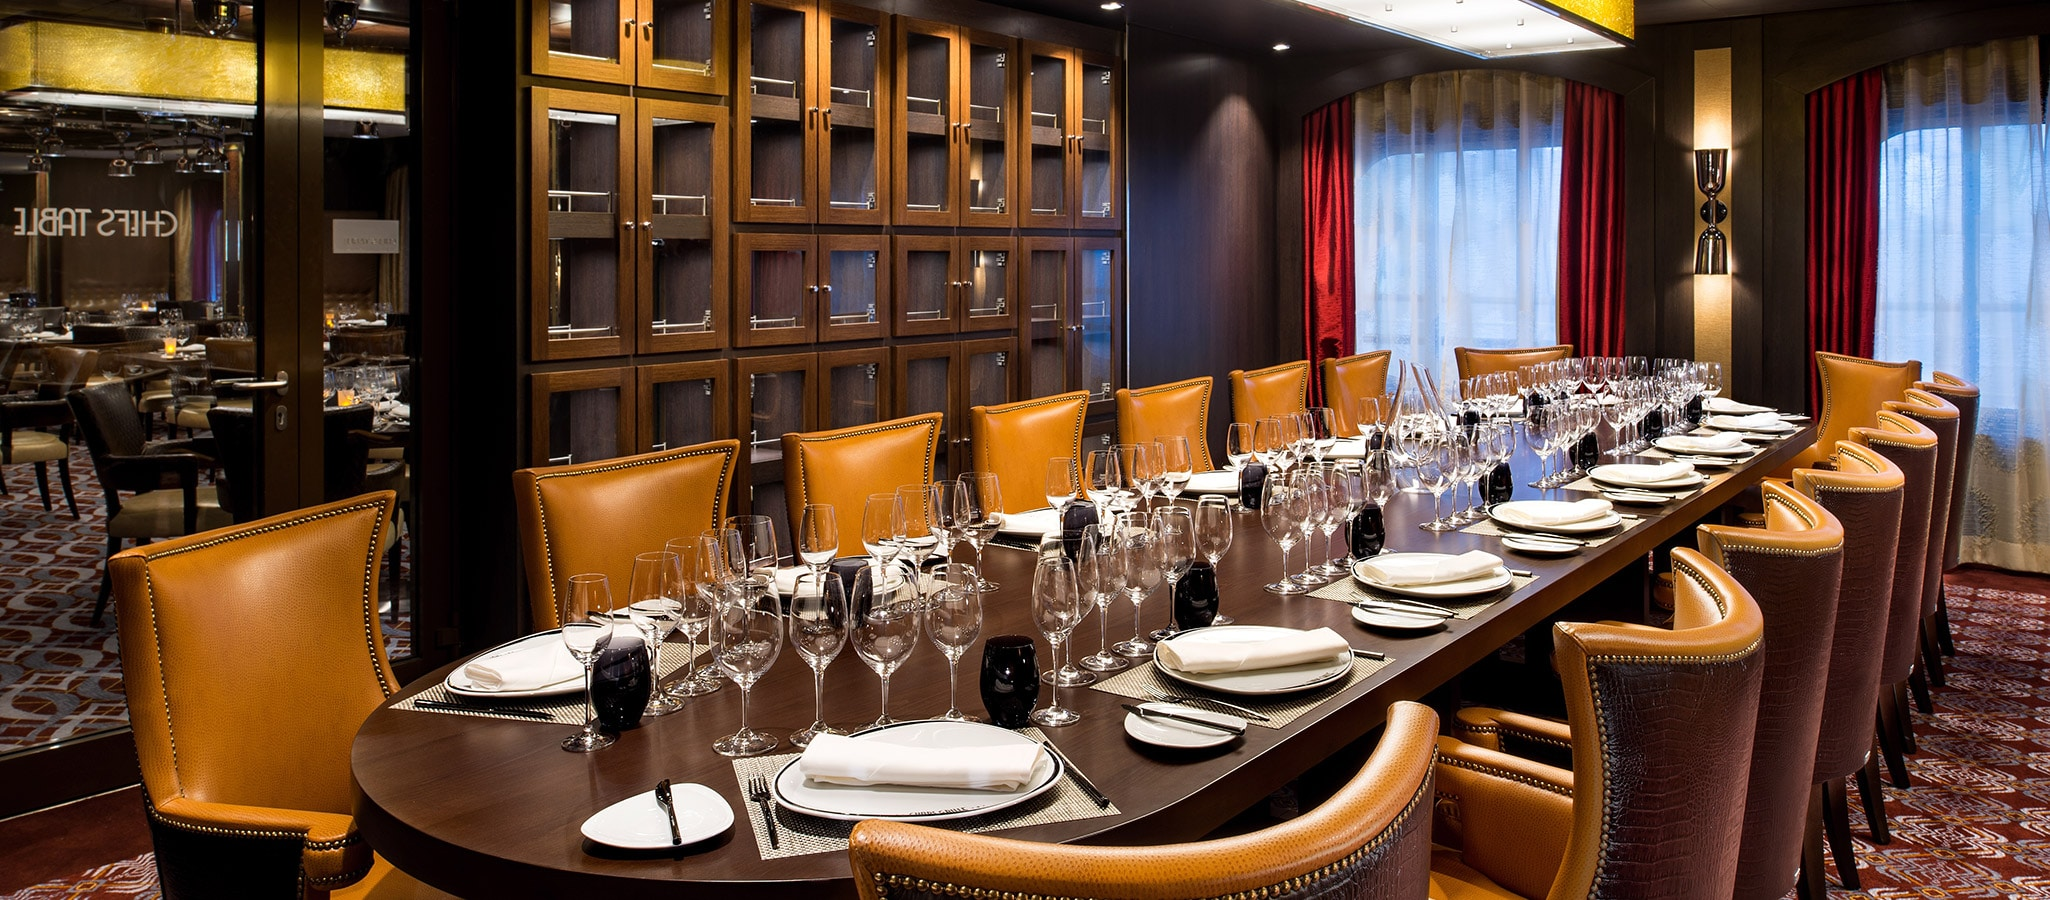 The great number of small restaurants on board offer top-class cuisine and a tasteful, elegant atmosphere – just perfect for a quiet dinner among the executive board.